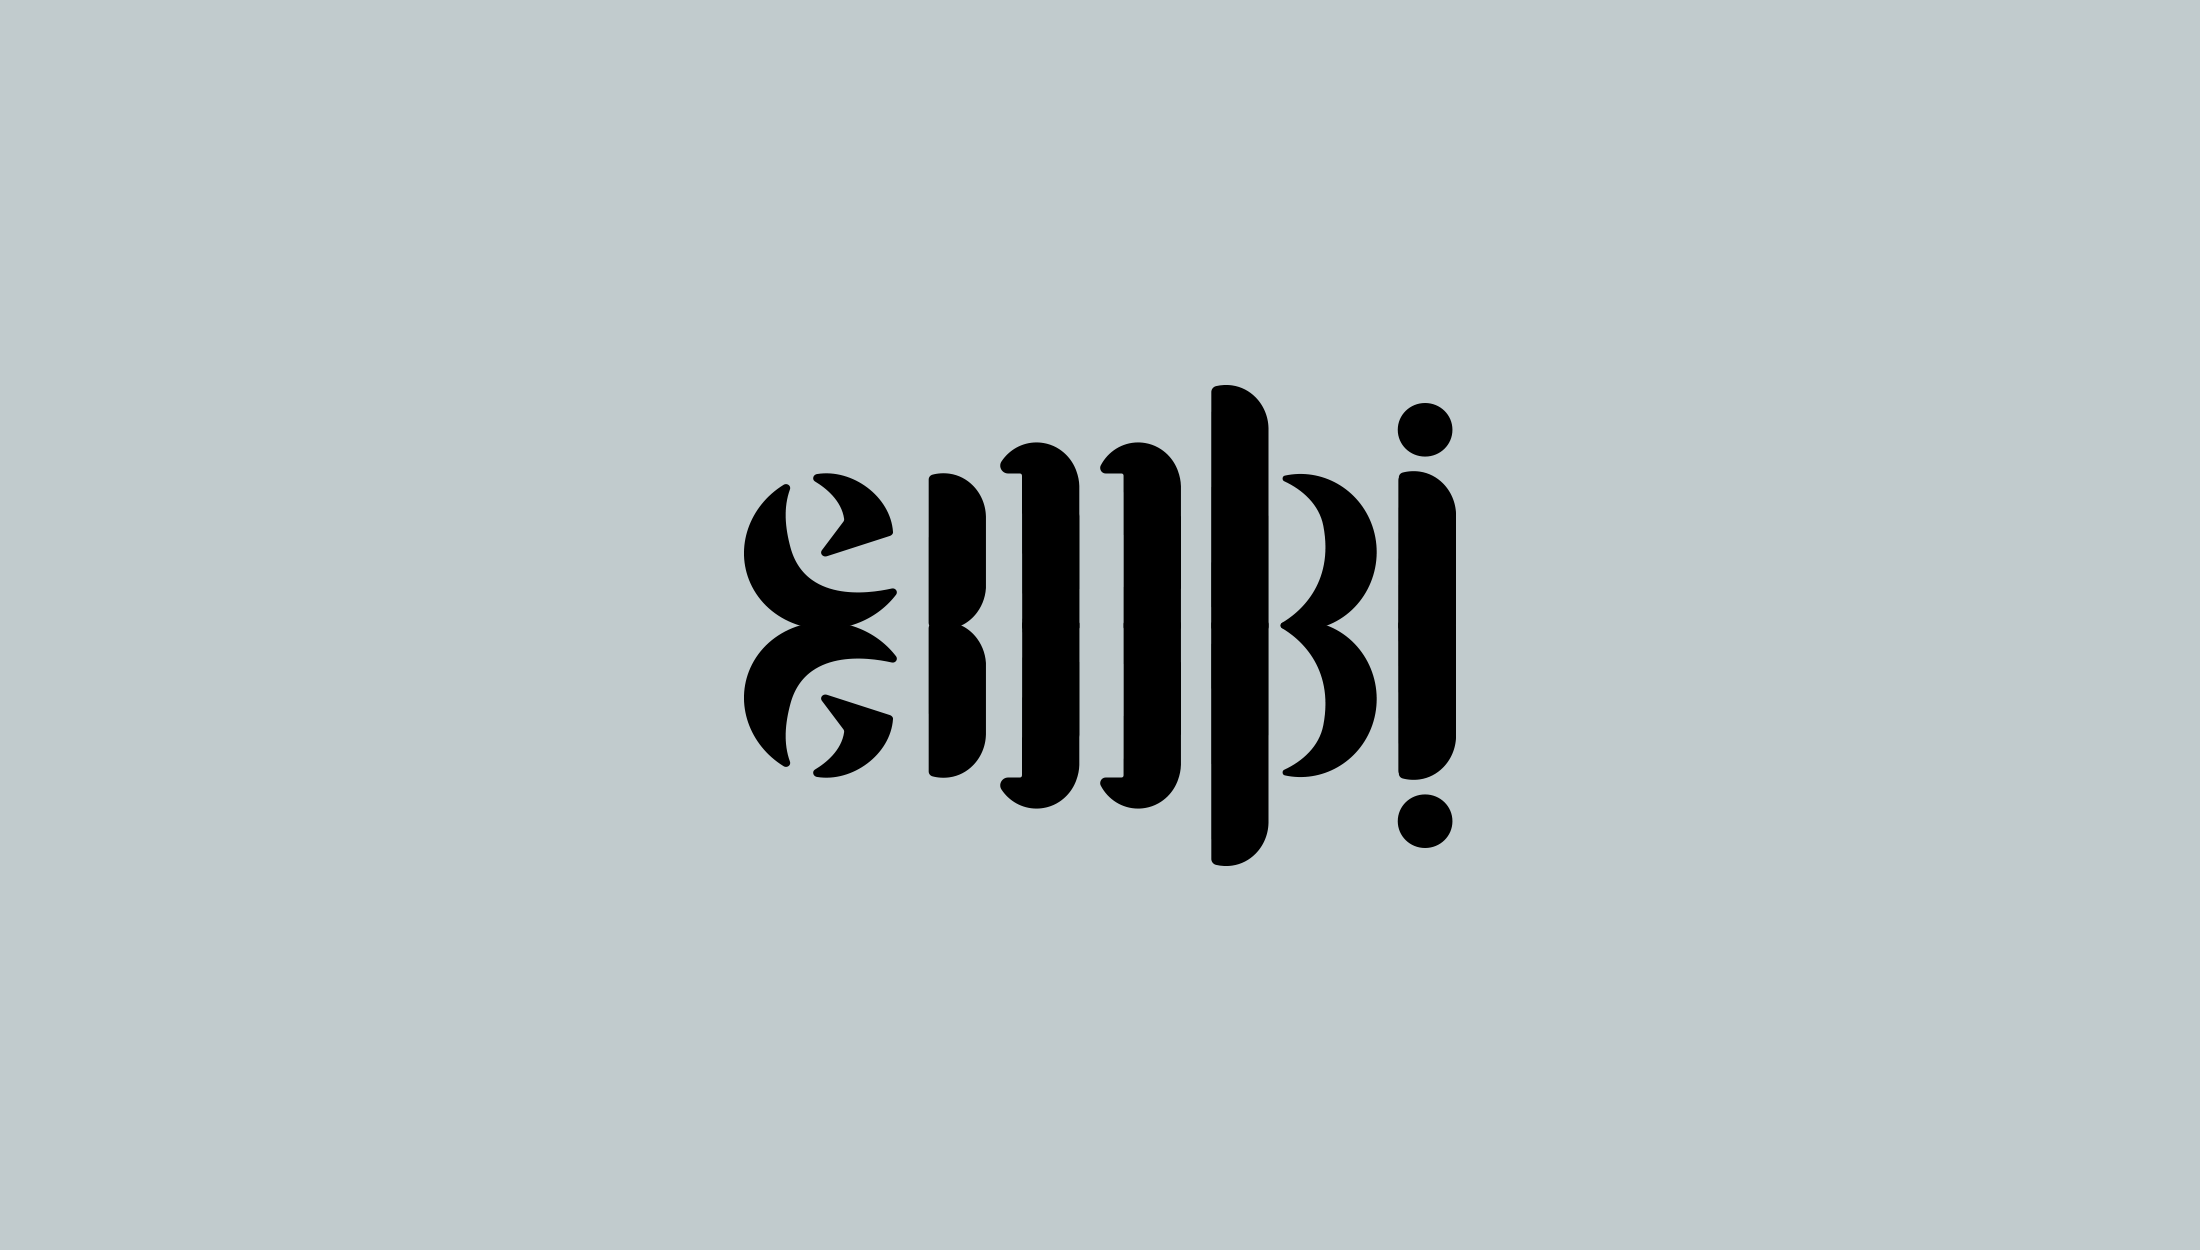 Logo design for Embi Studios, exclusive womenswear line based in London - designed by Wiltshire-based graphic designer, Kaye Huett